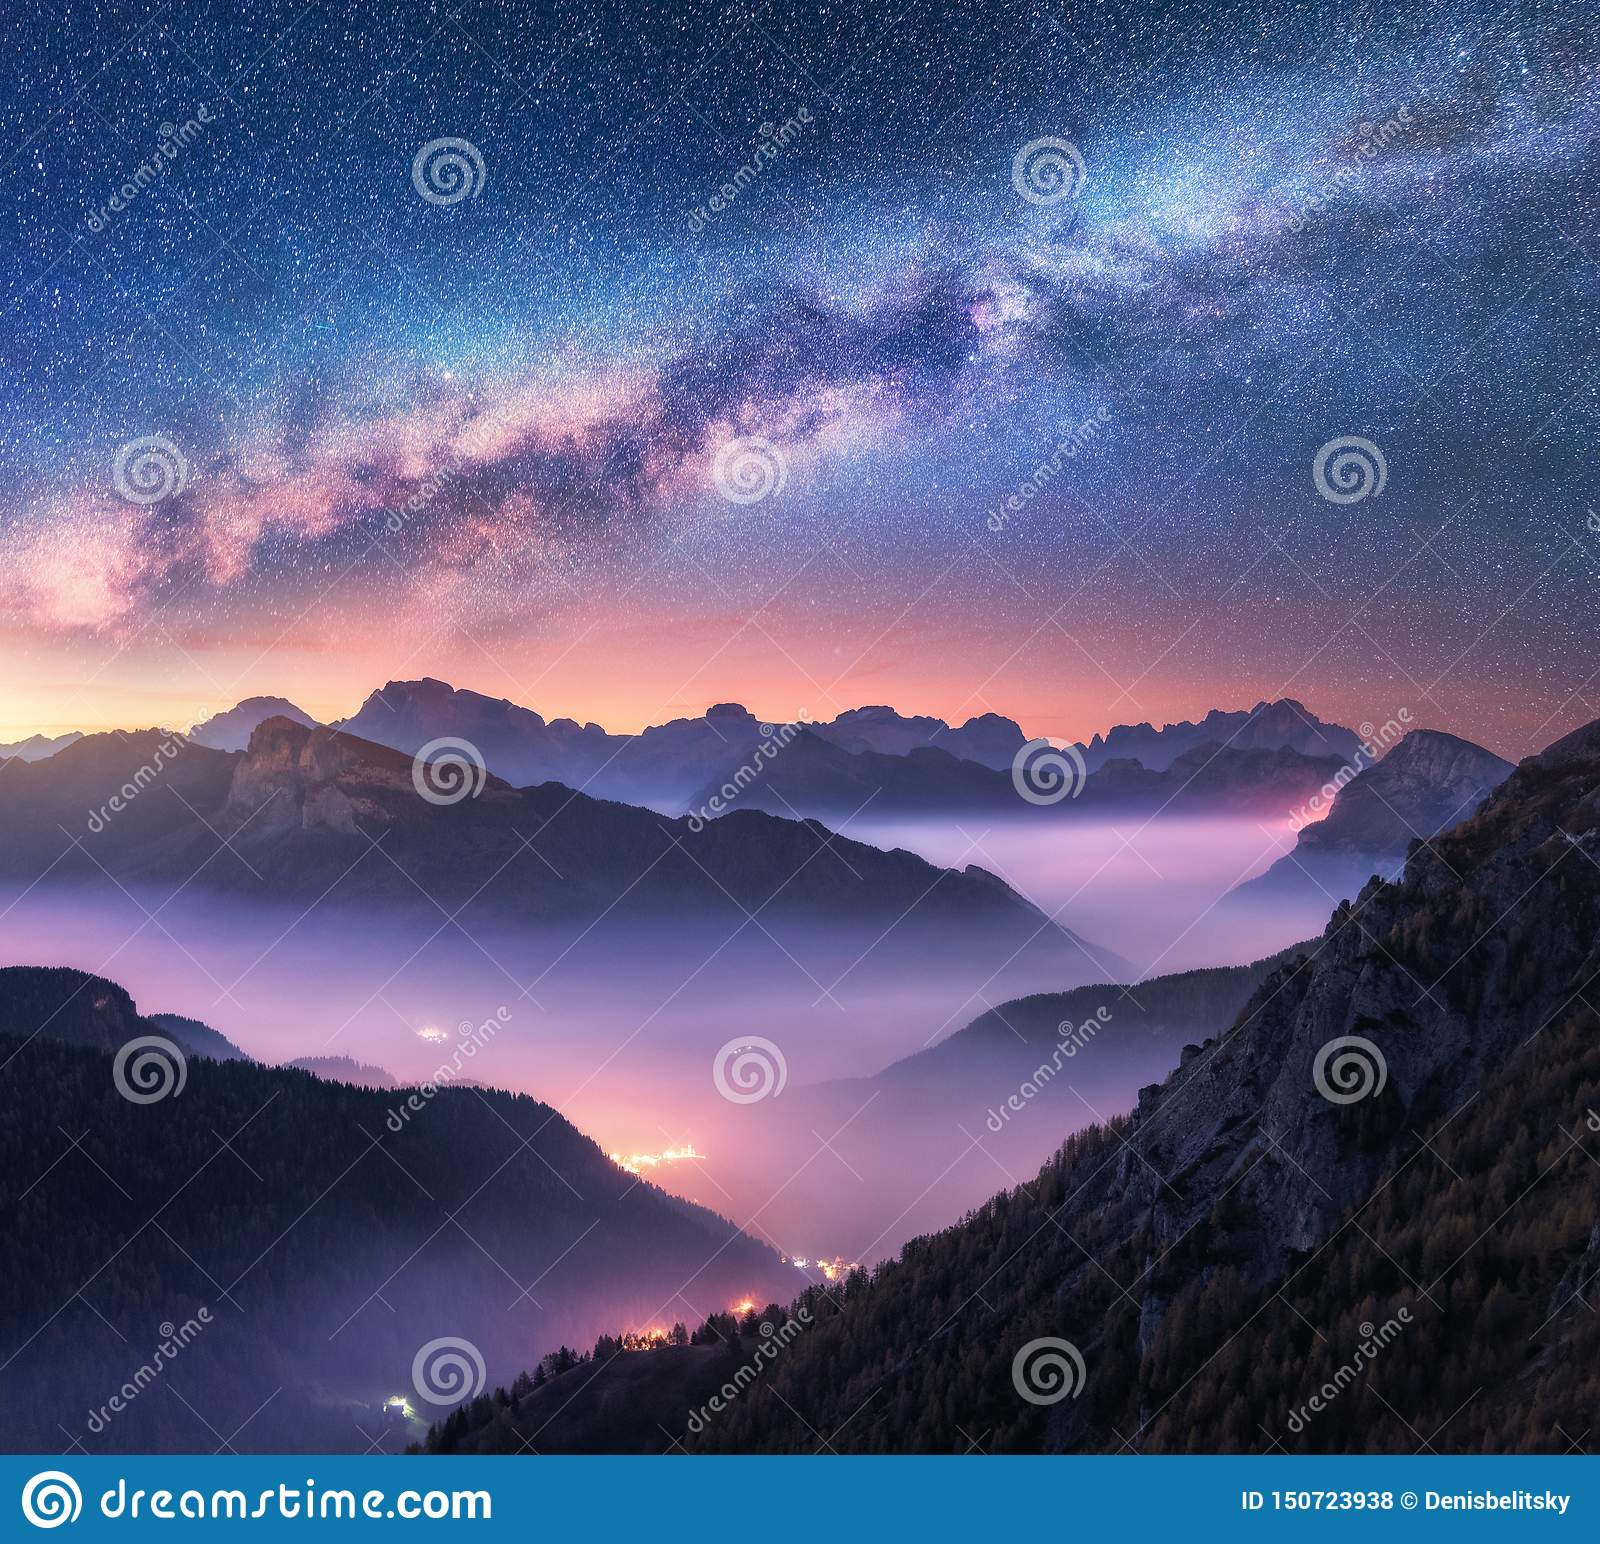 Milky Way over mountains in fog at night in summer. Landscape